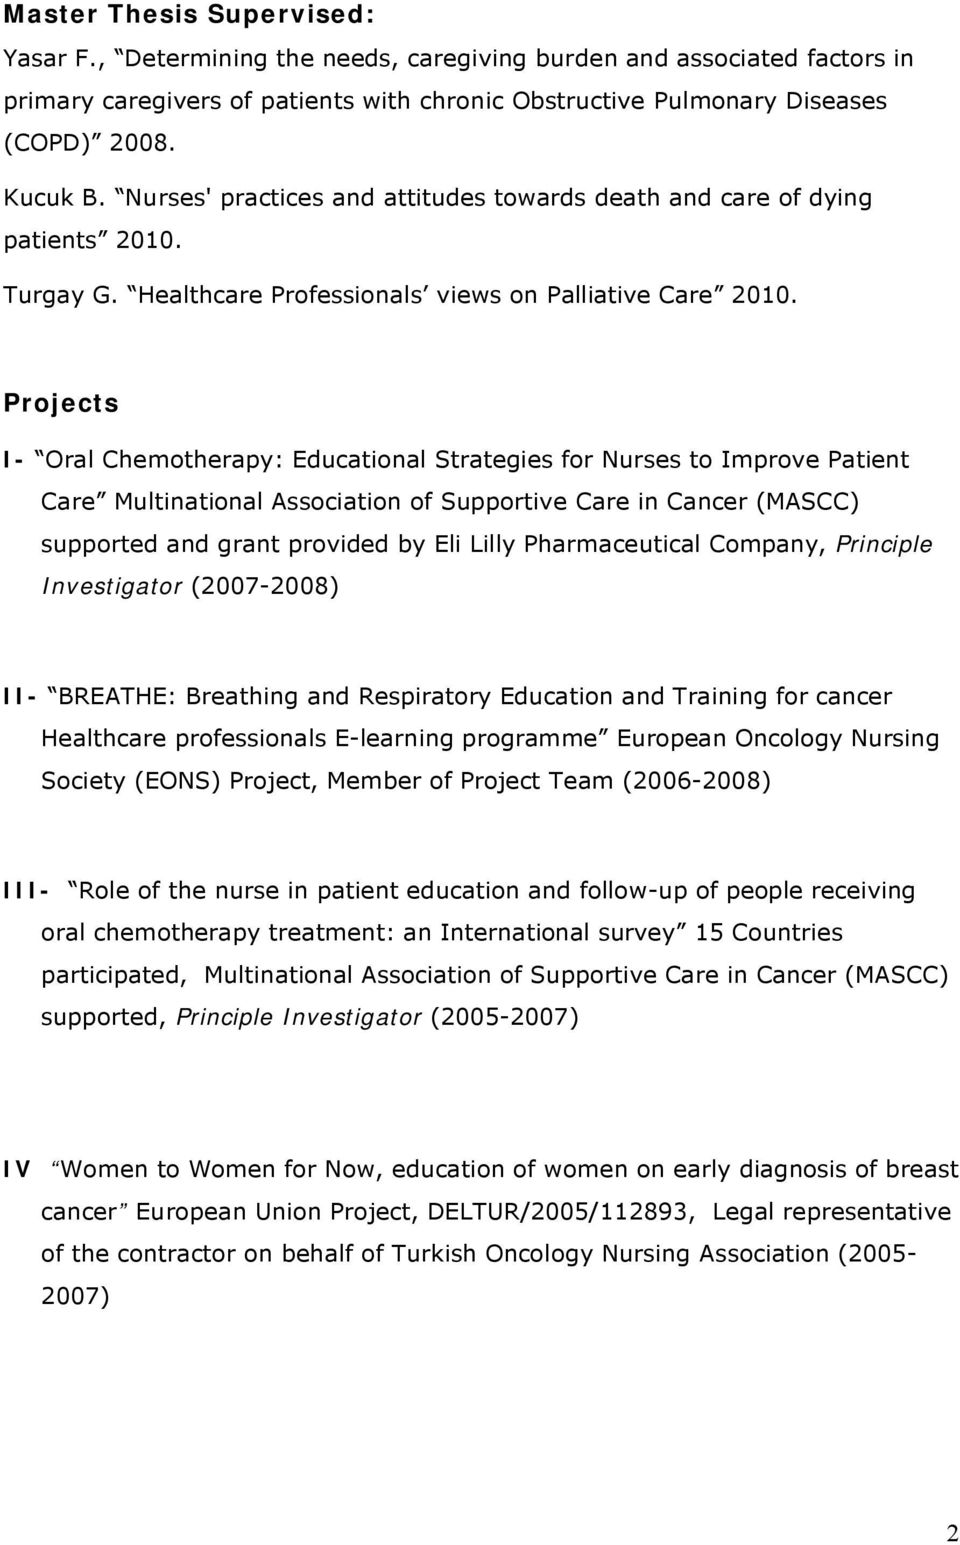 Projects I- Oral Chemotherapy: Educational Strategies for Nurses to Improve Patient Care Multinational Association of Supportive Care in Cancer (MASCC) supported and grant provided by Eli Lilly